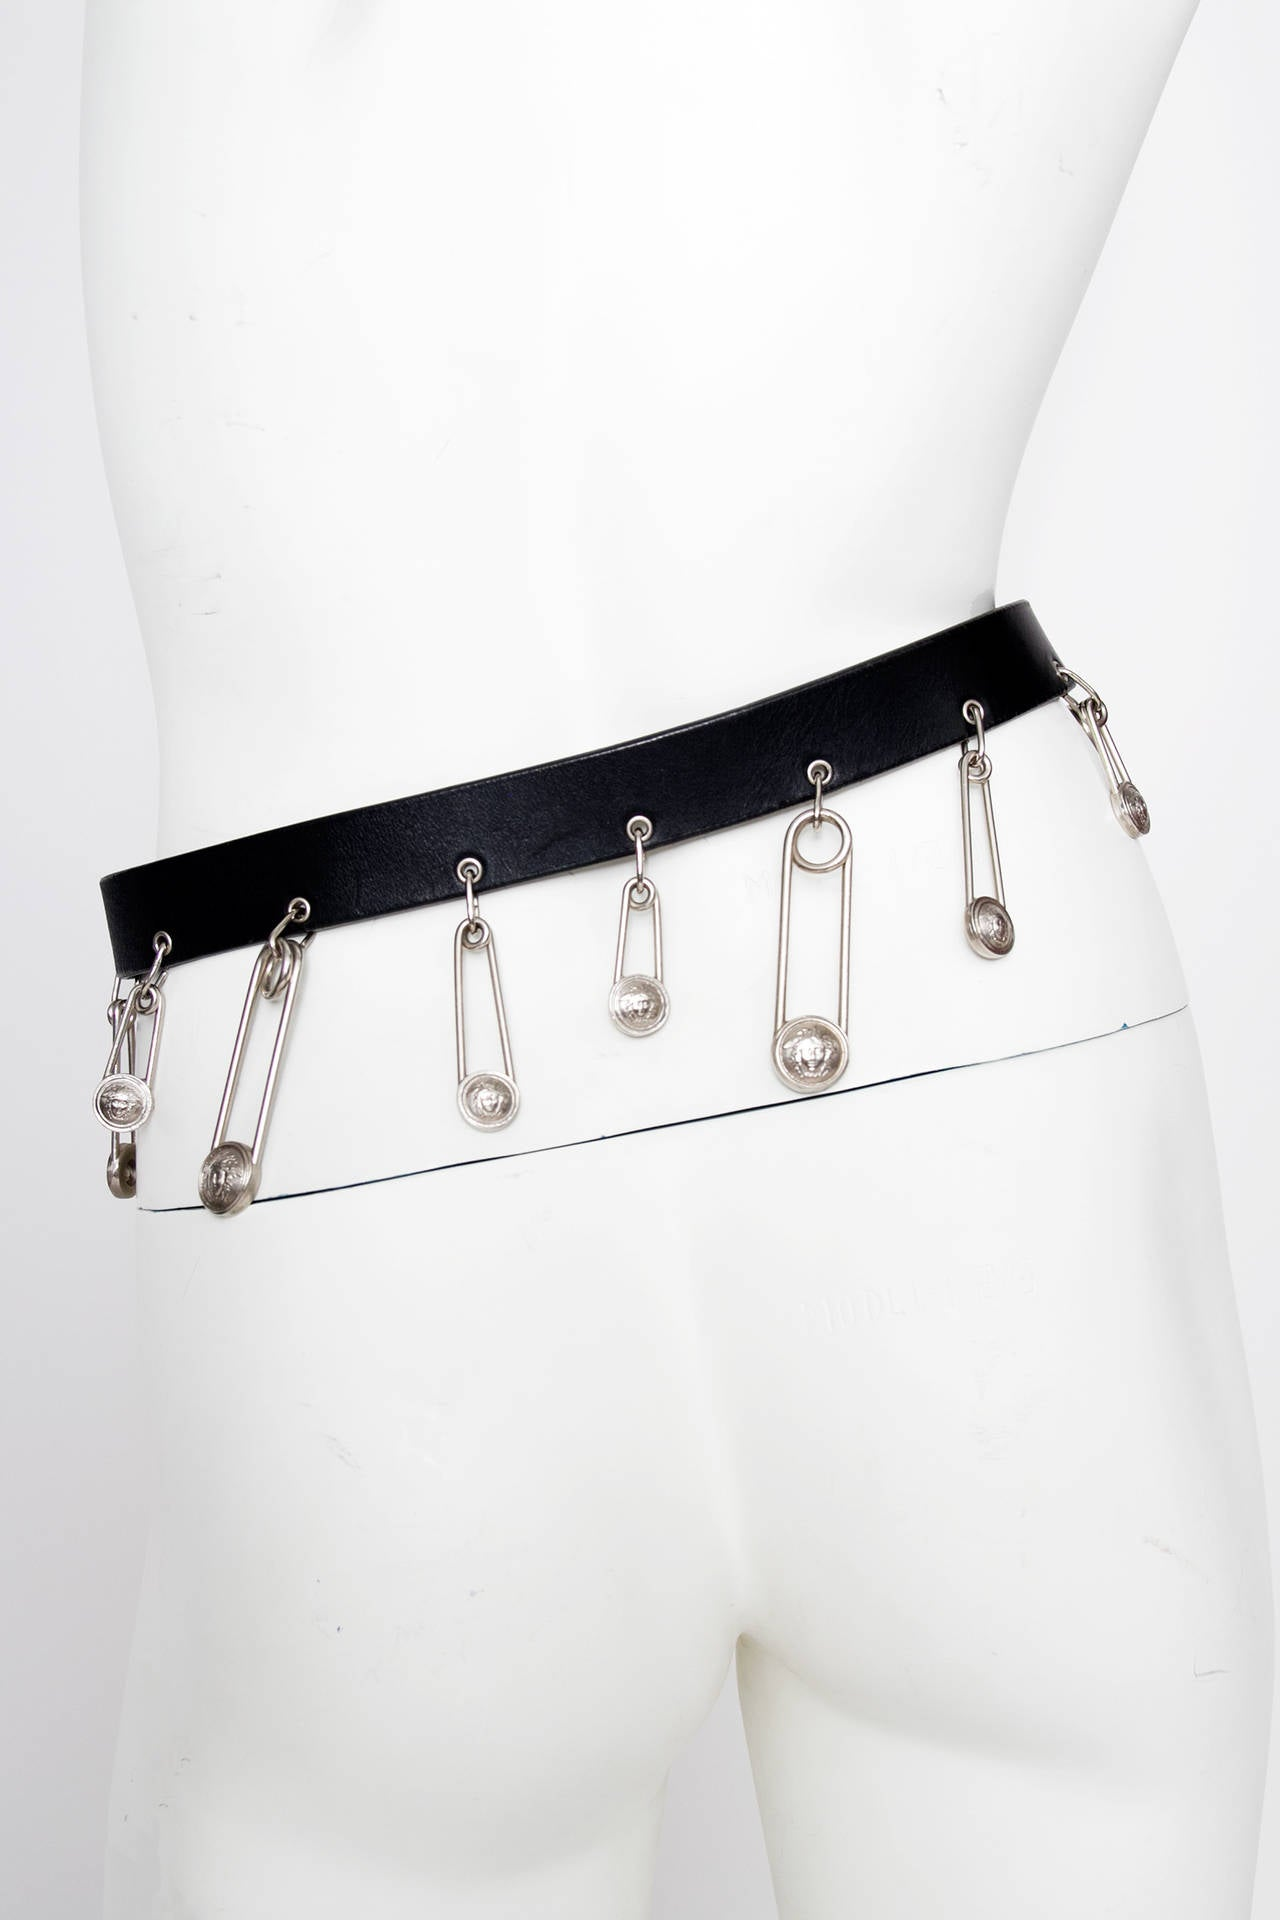 1990s Gianni Versace Black Leather Safety Pin Belt 5